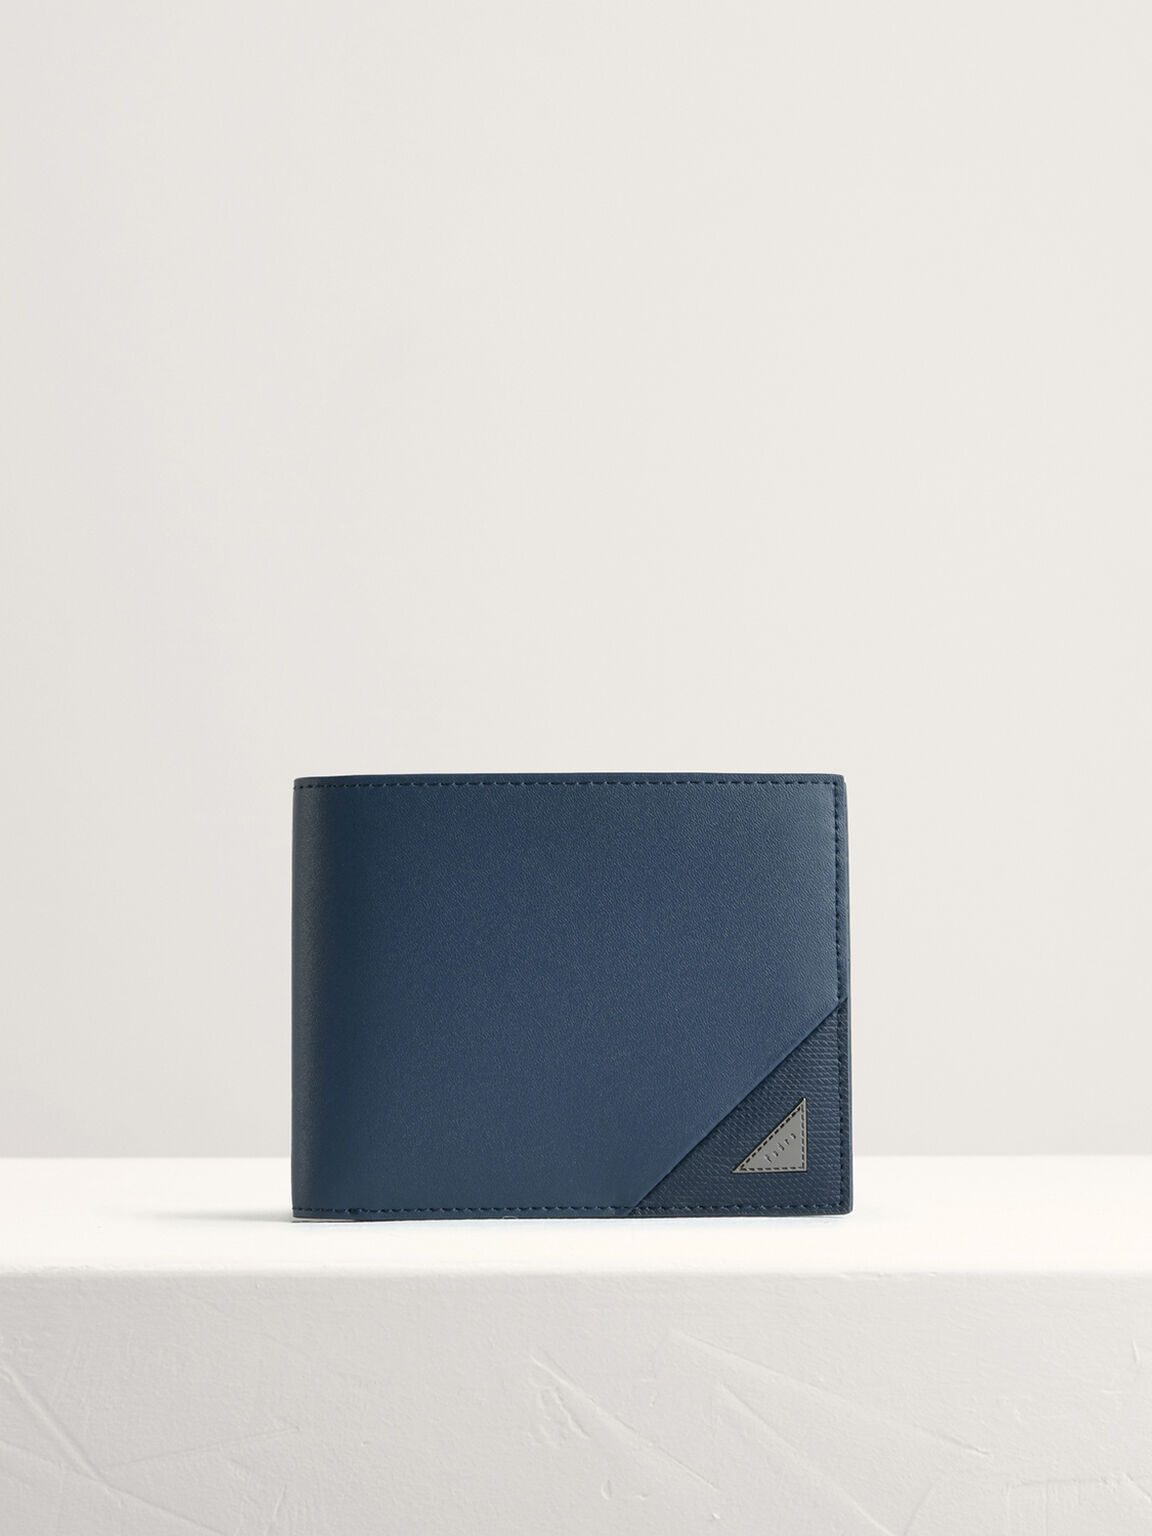 Leather Bi-Fold with Insert, Navy, hi-res